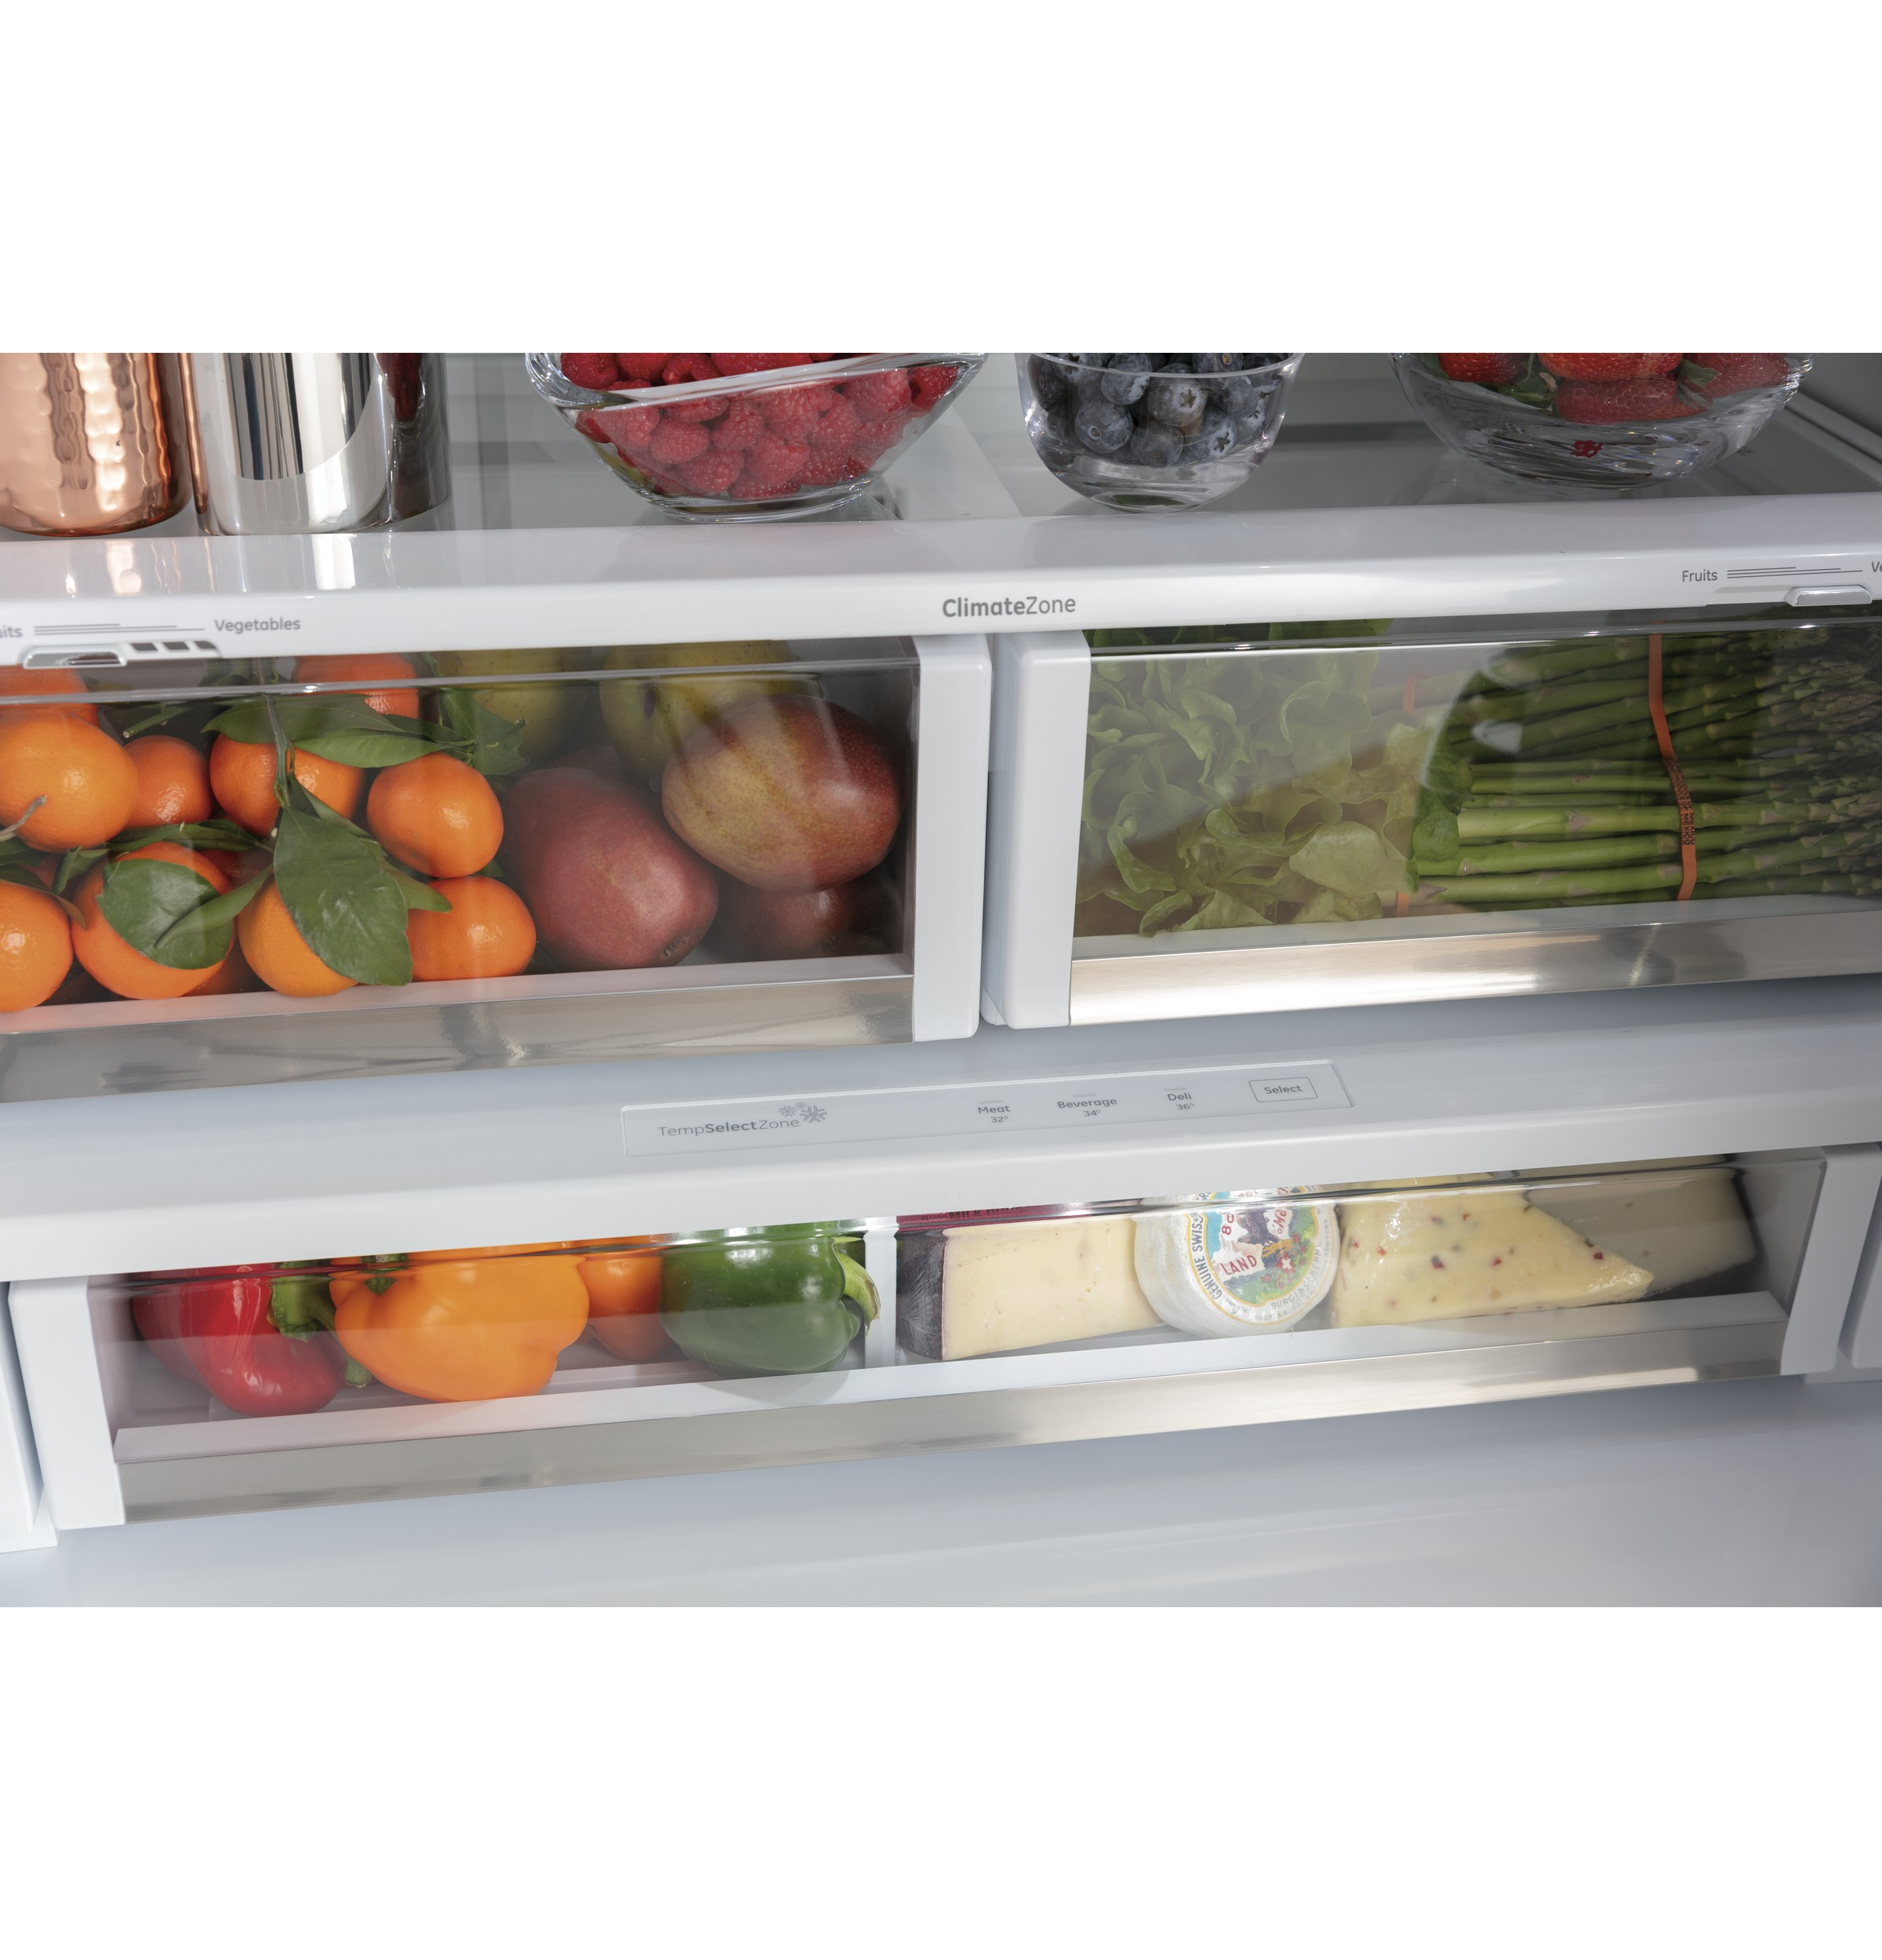 Model: CWE23SP3MD1 | Cafe Café™ ENERGY STAR® 23.1 Cu. Ft. Smart Counter-Depth French-Door Refrigerator